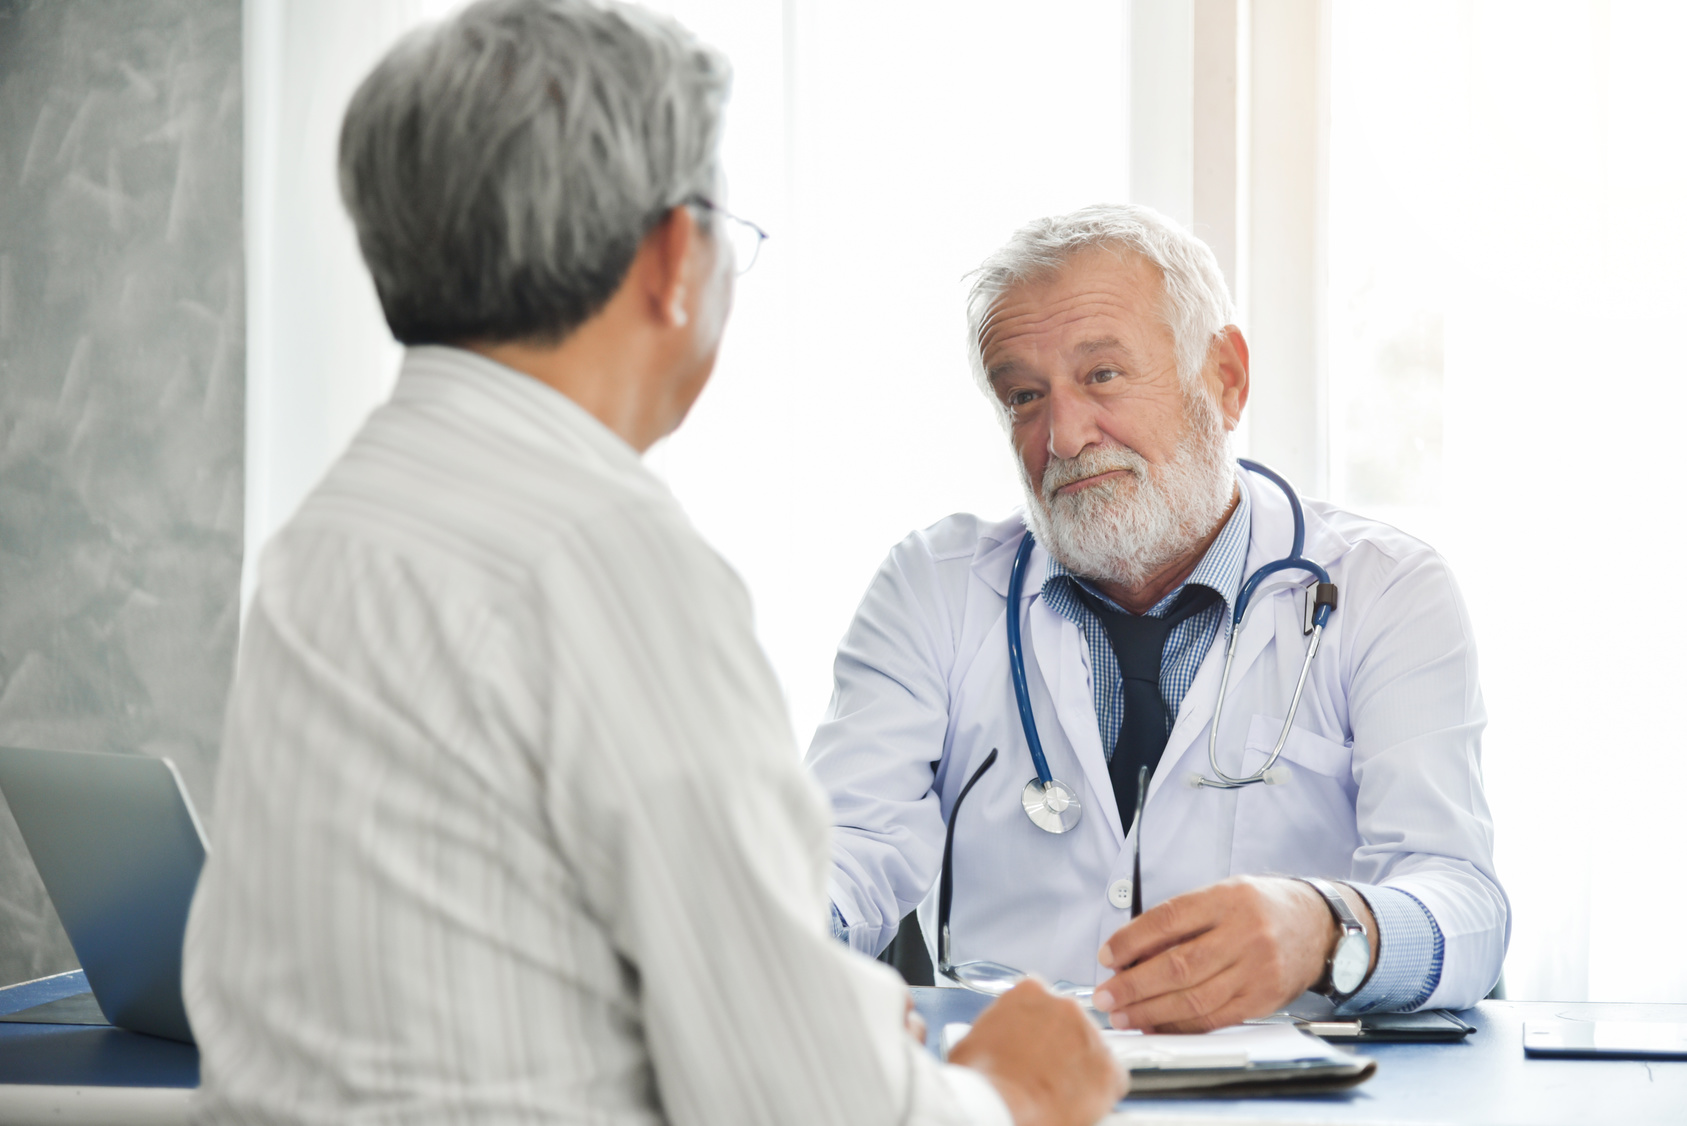 Don't Be Afraid: Why You Should Ask Your Doctor to Screen You or Your Parent for Alzheimer's